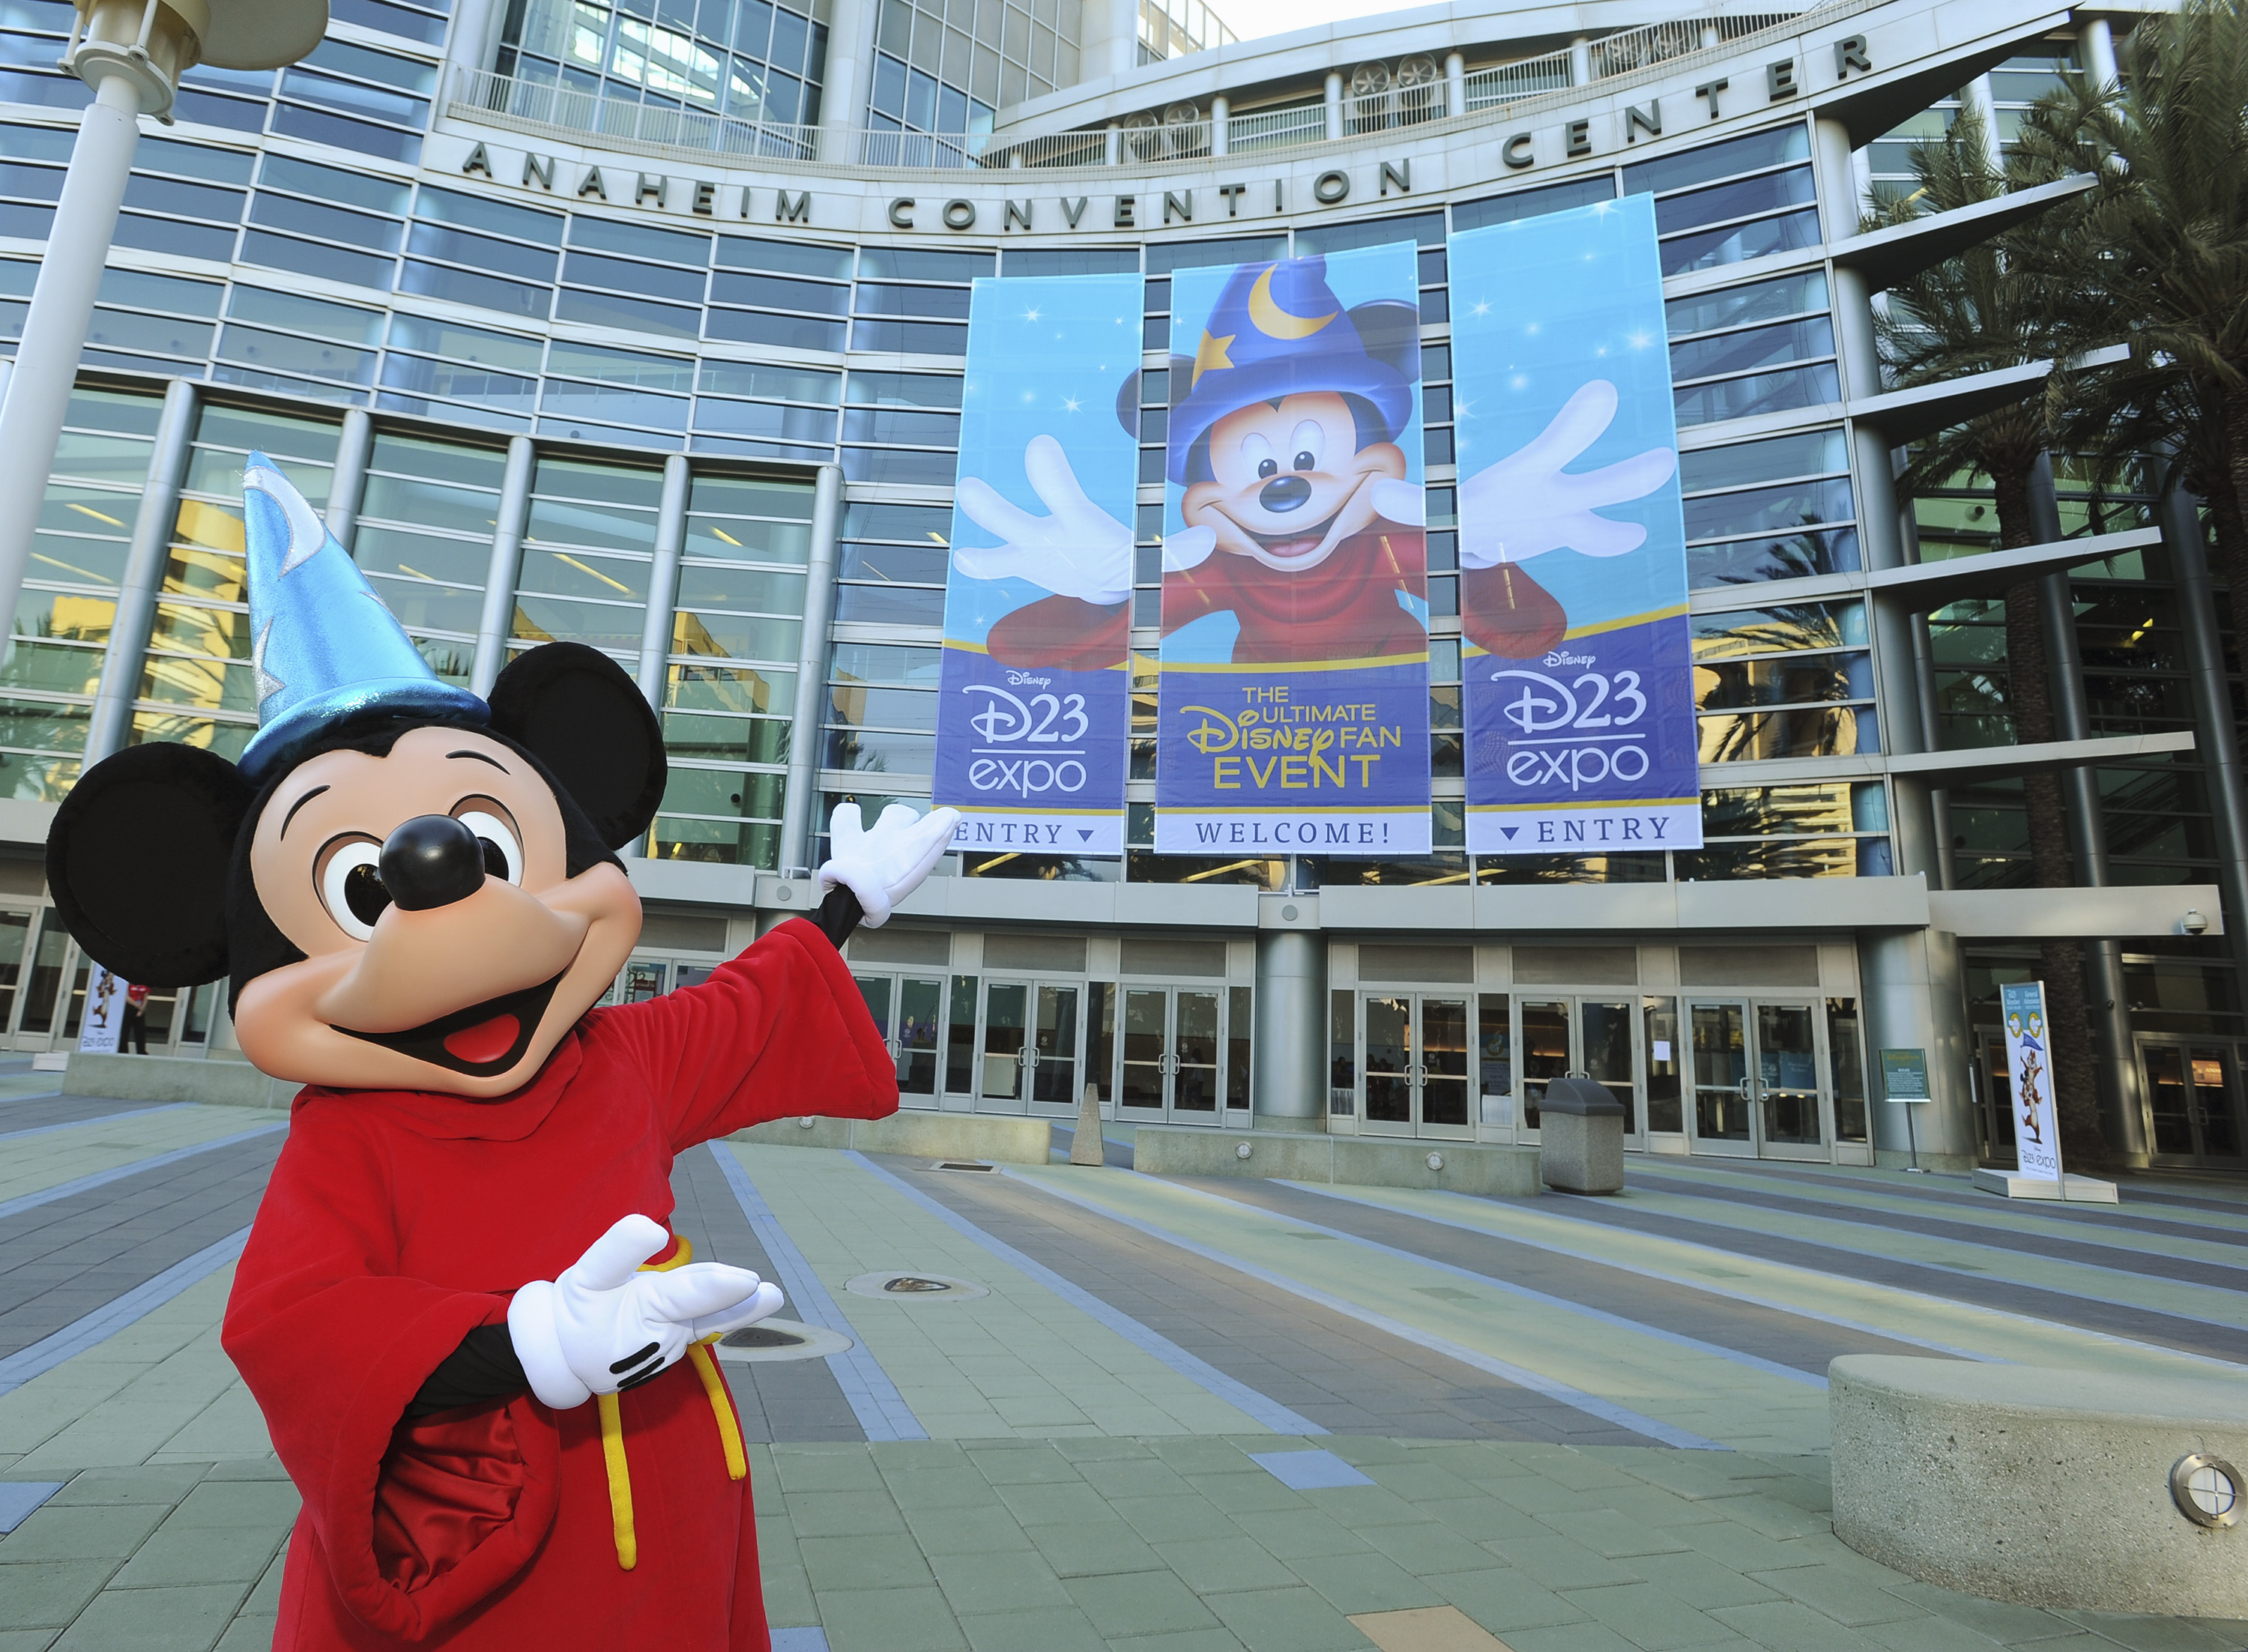 D23 Expo III Announced – Aug. 9-11, 2013